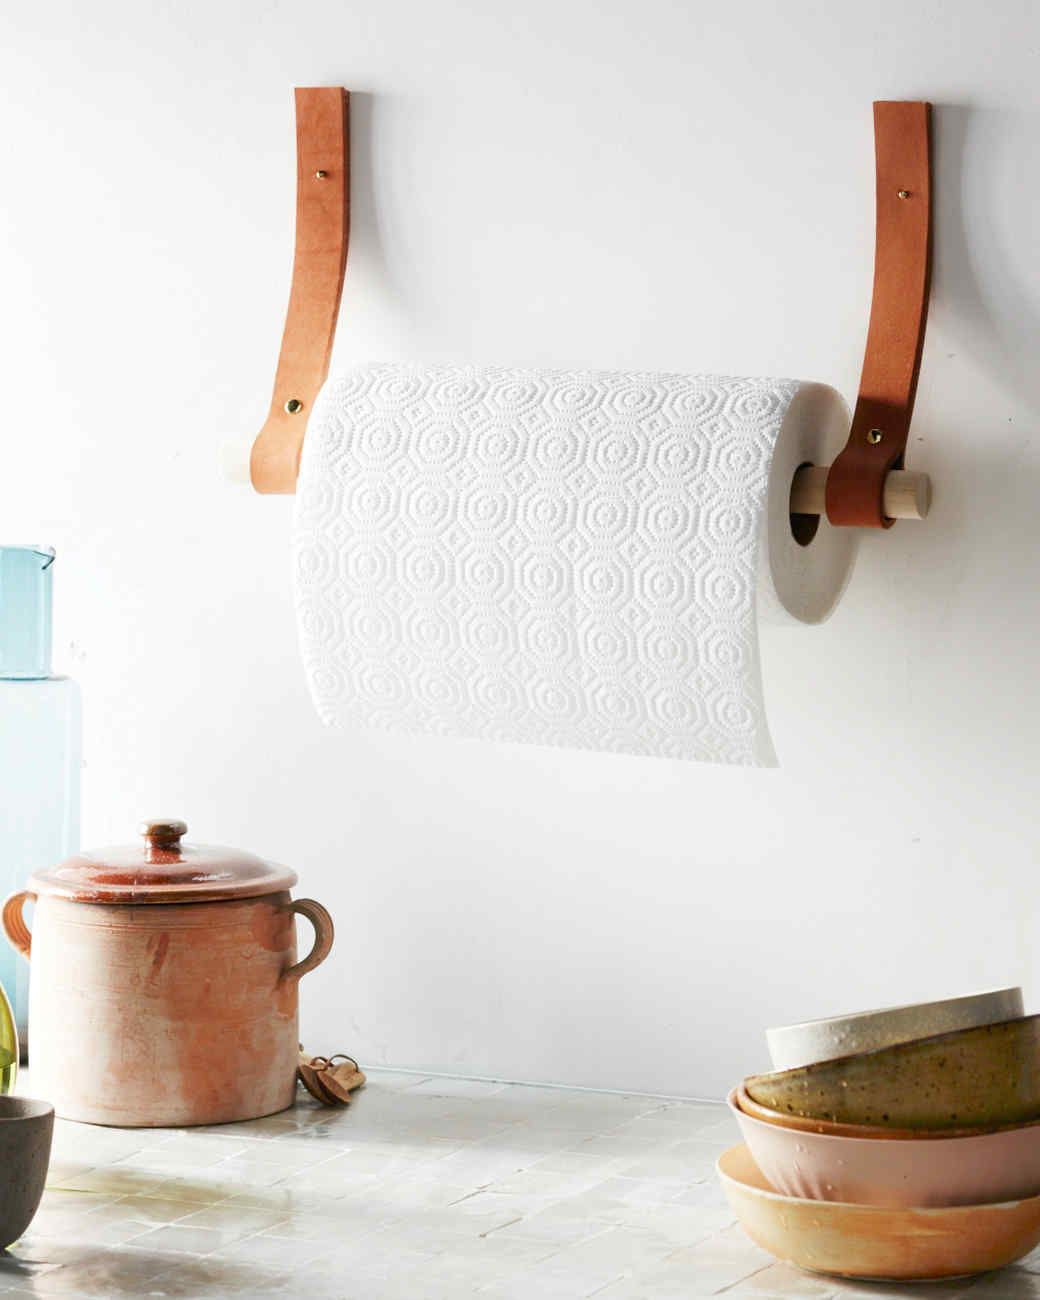 leather paper towel holder - Diy Toilettenpapierhalter Stand